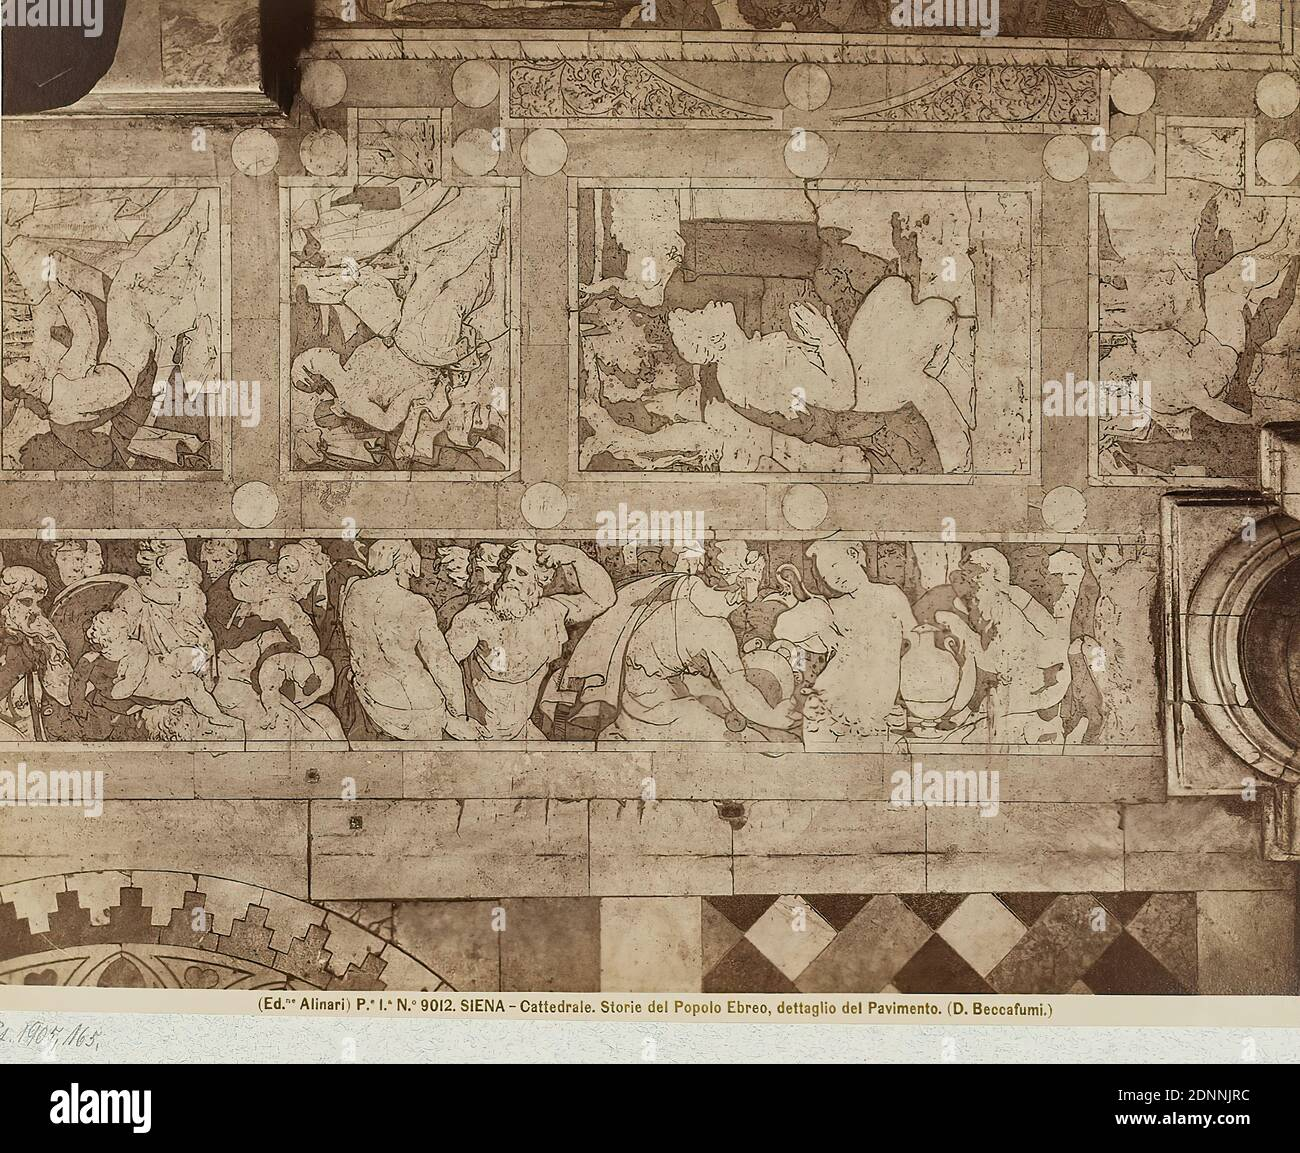 Domenico Beccafumi: Stories of the People of Israel, detail of the floor in the Cathedral of Siena, albumin paper, black and white positive process, image size: height: 19,20 cm; width: 25,00 cm, SIENA - Cattedrale. Storie del Popolo Ebreo, dettaglio del Pavimento. (D. Beccafumi.), Old Testament, floor (architecture), art Stock Photo